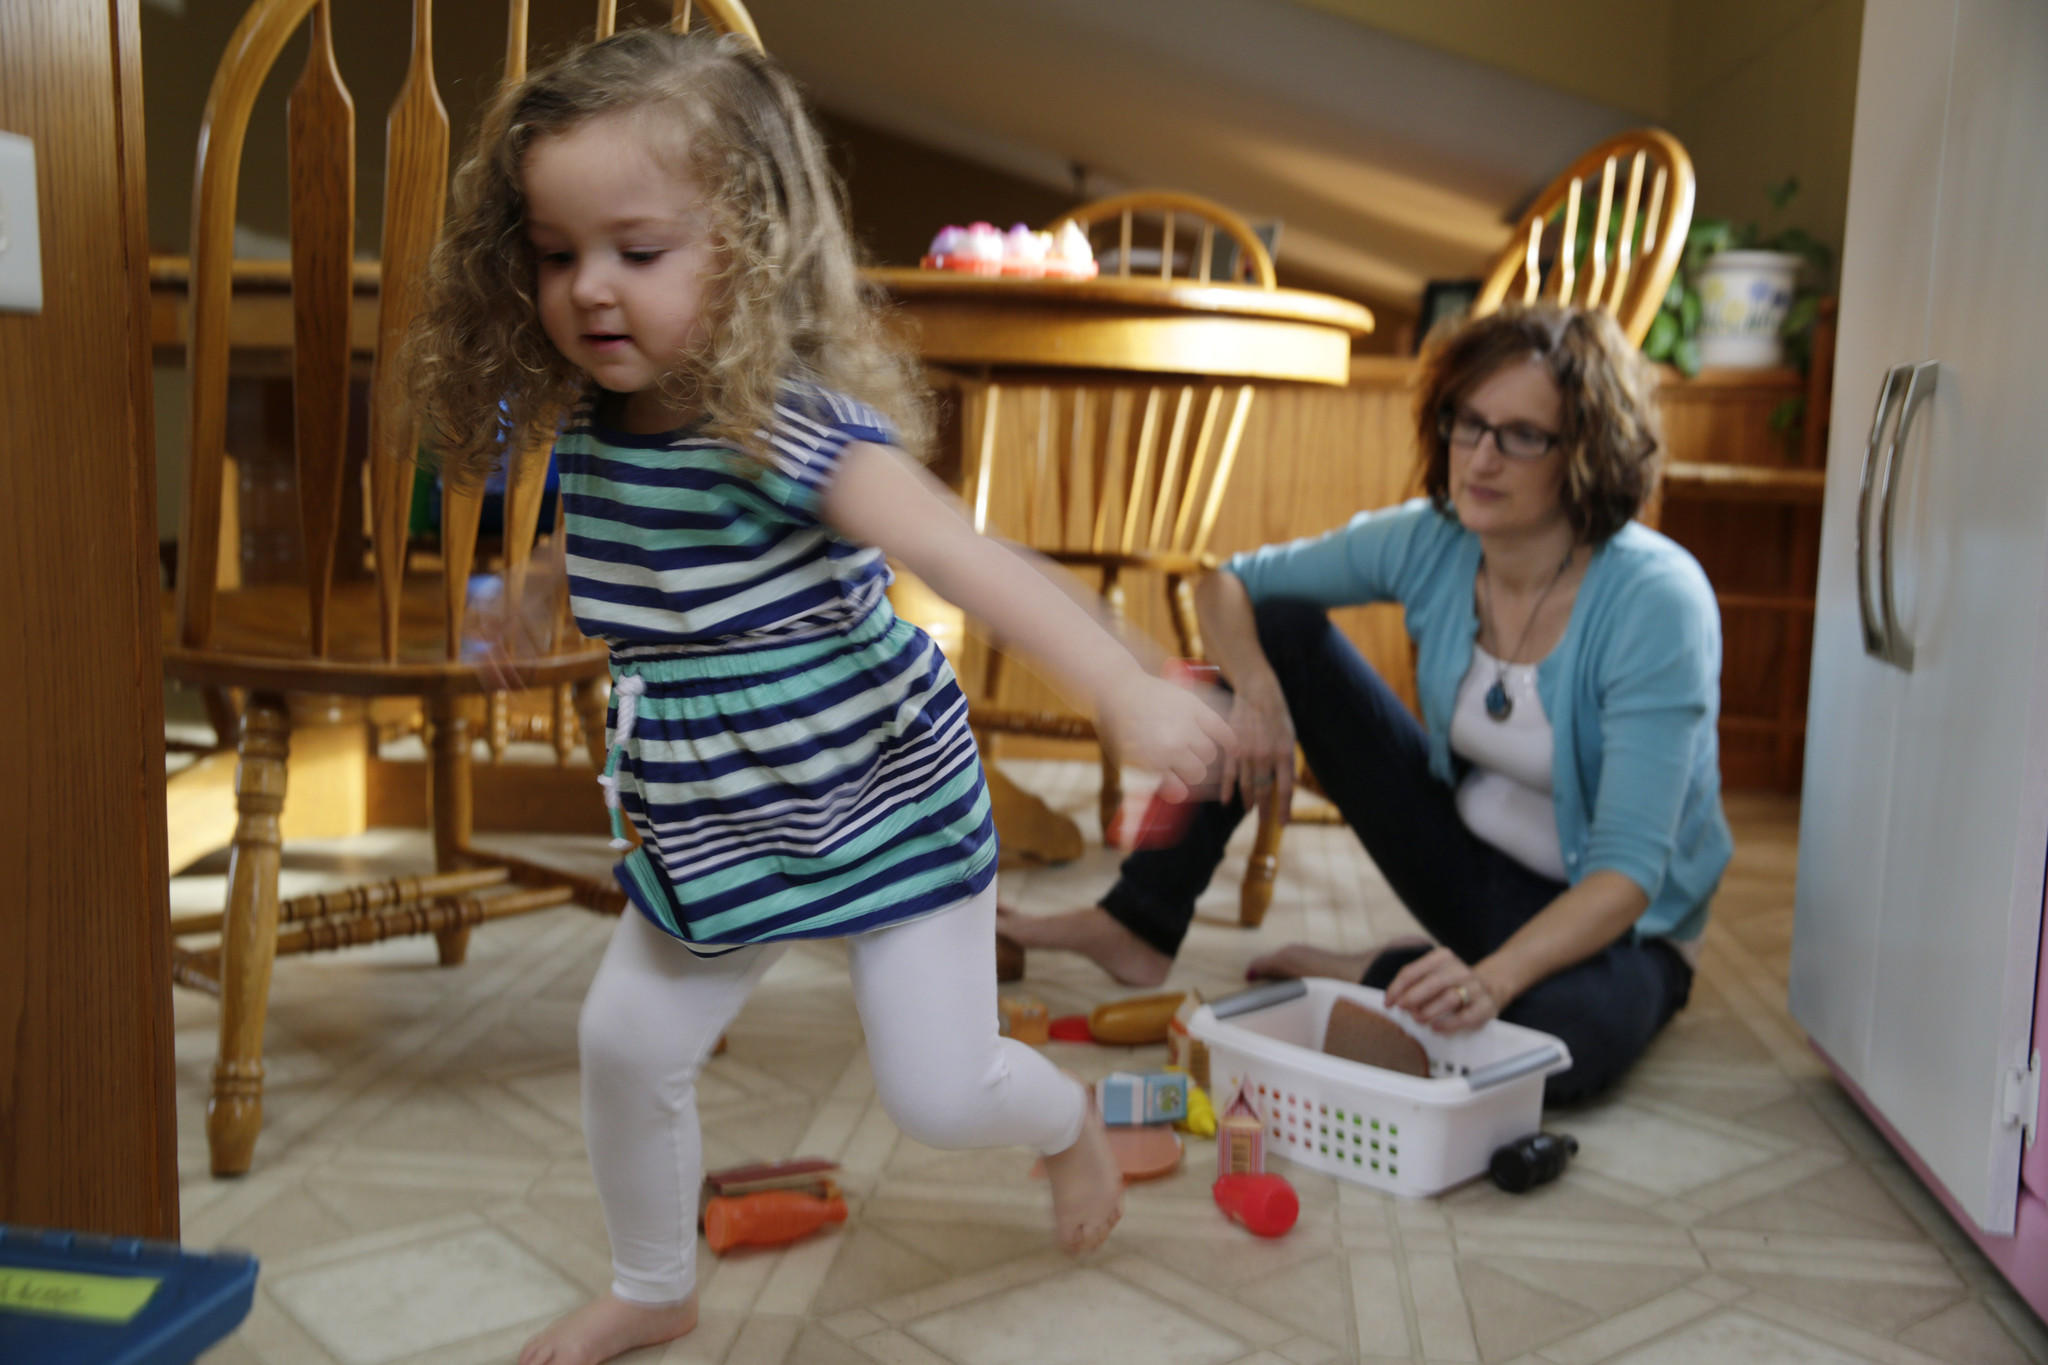 Ellen Hanrahan plays with her 2-year-old daughter, Leena Hanrahan, in their home in Prophetstown, Ill. In 2012 Hanrahan gave birth to Leena, despite undergoing a permanent sterilization procedure called Essure two years earlier.